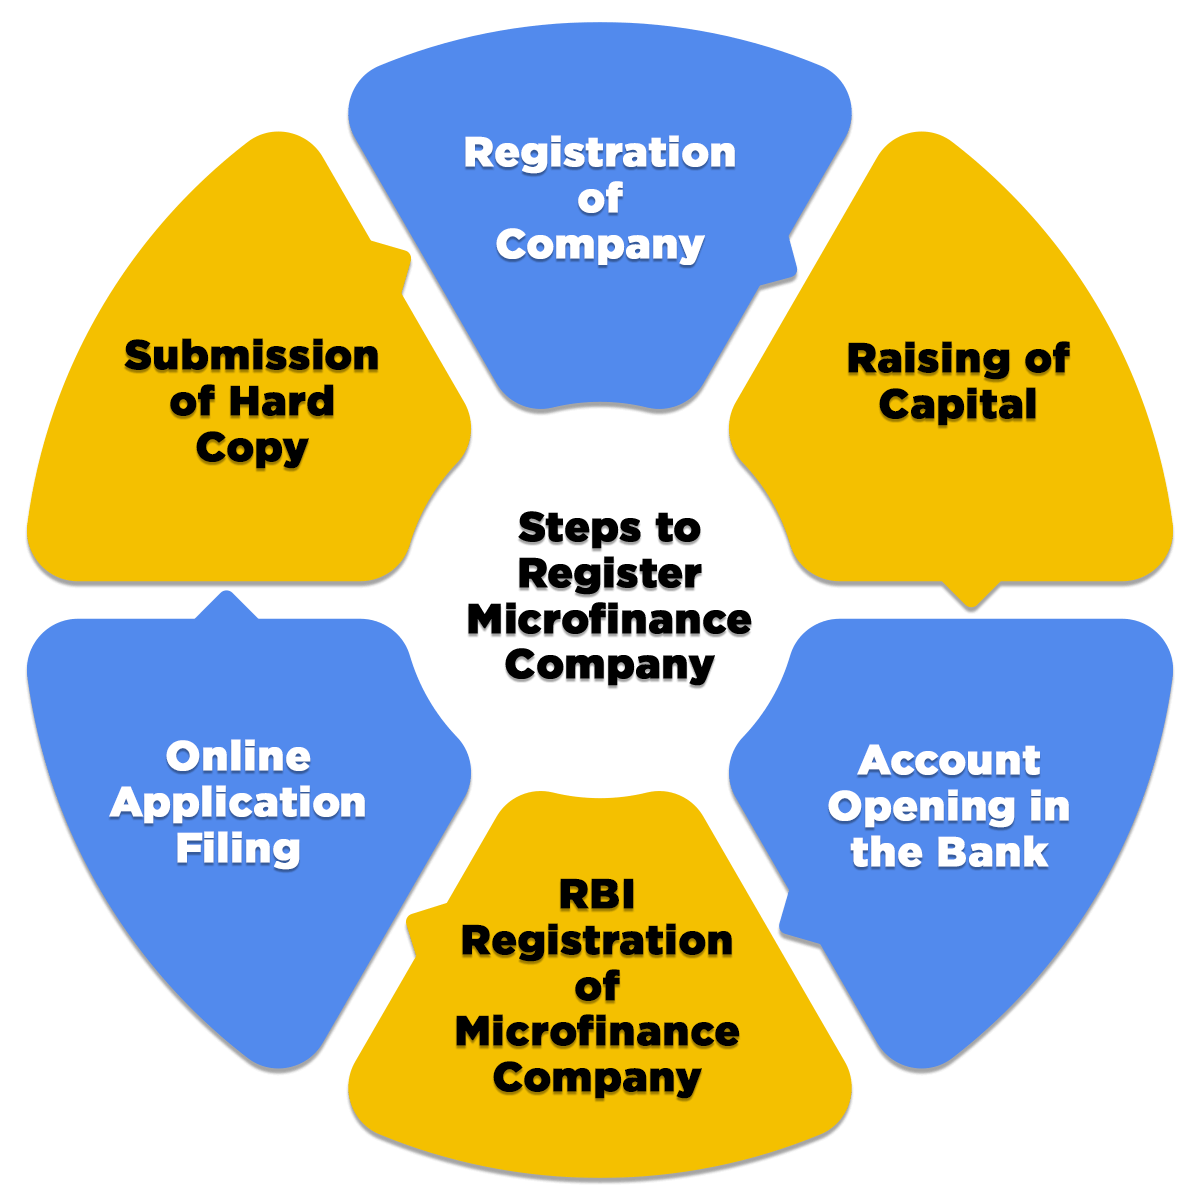 process of mmicrofinance company registration